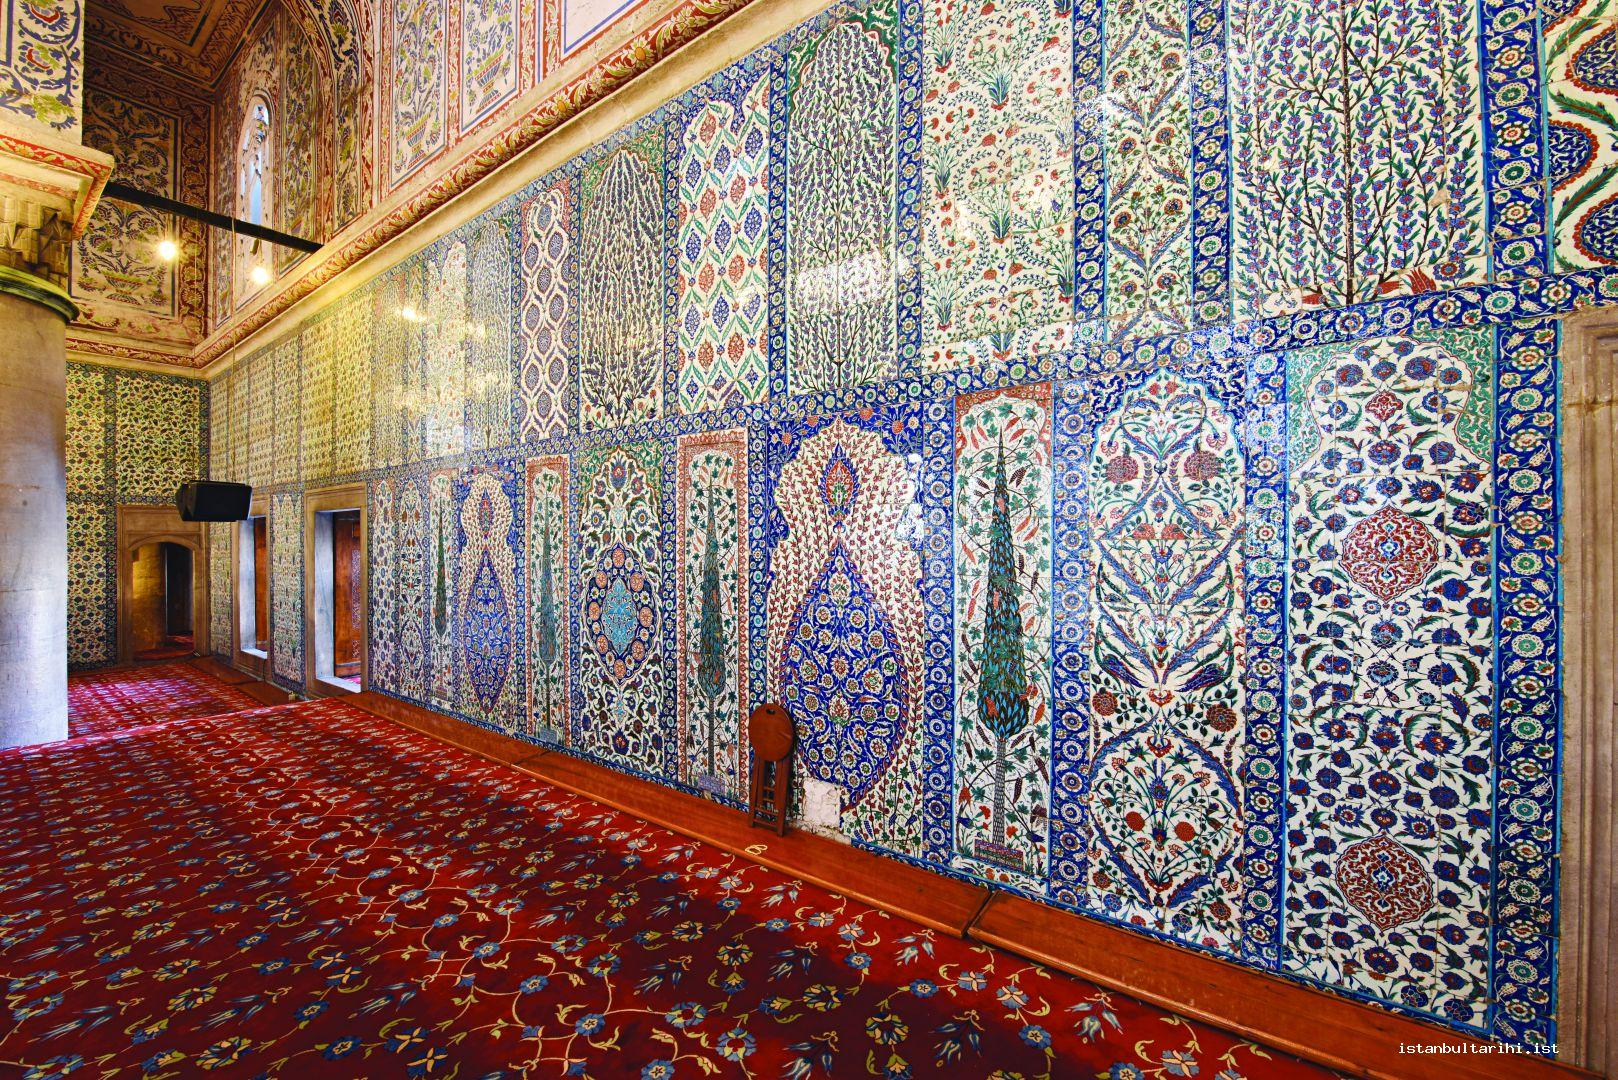 47- Wall tiles of Sultanahmet Mosque (Blue Mosque)